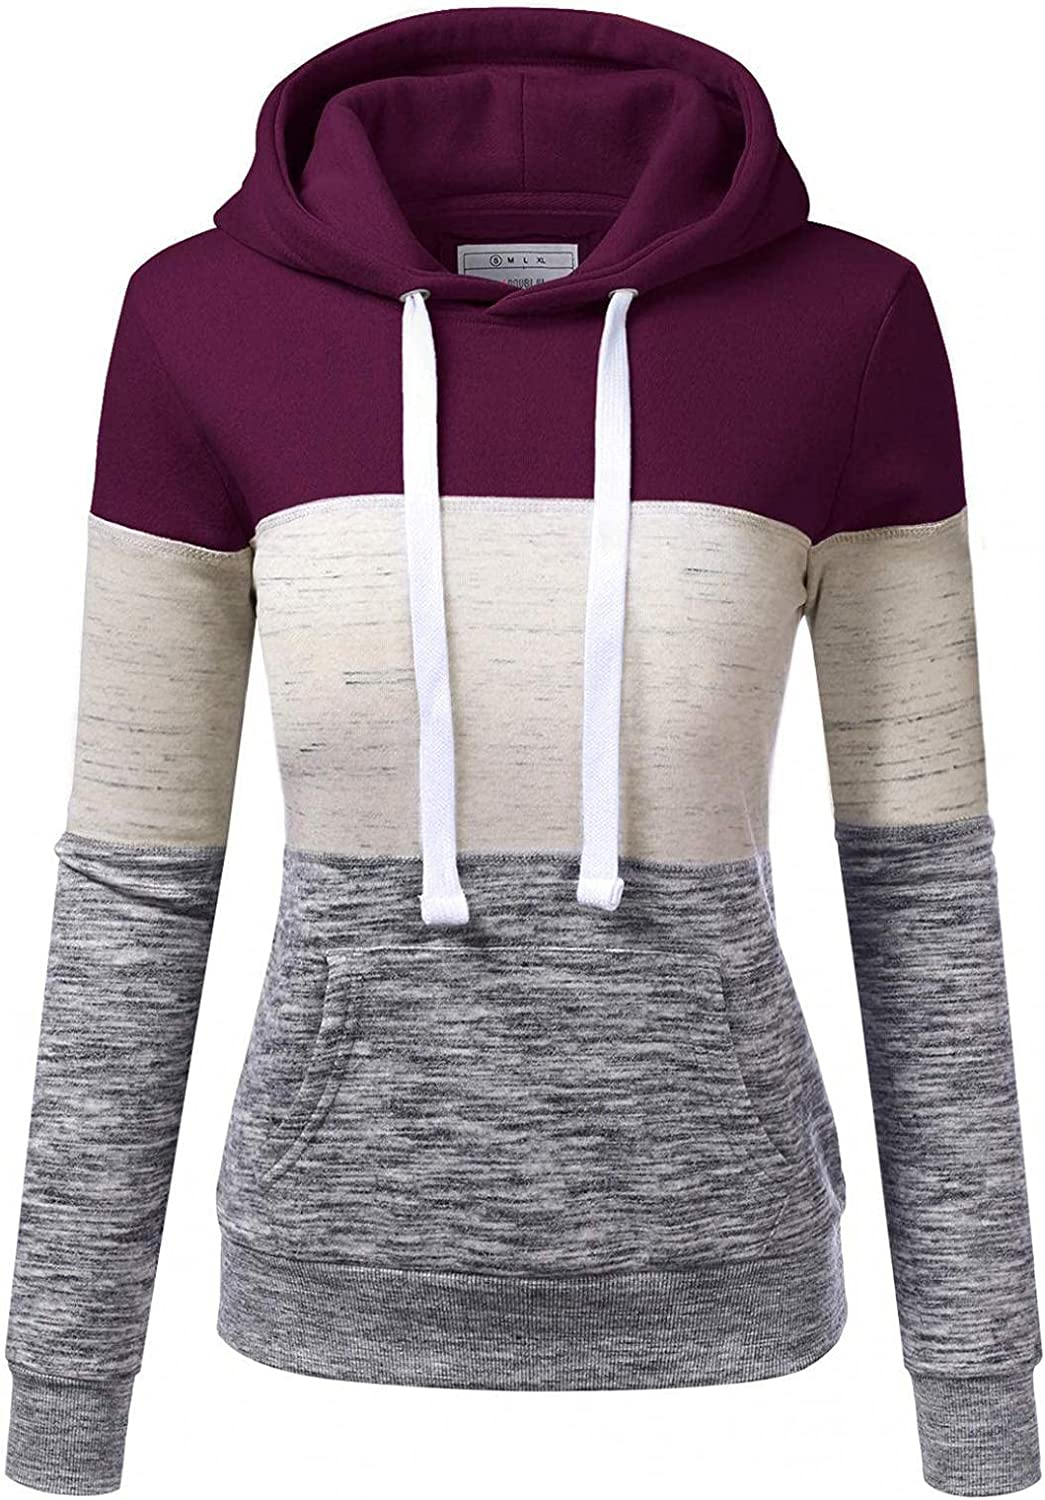 Hoodies for Women Pullover Round Neck Pocket Hooded Casual Shirts Long Sleeve Lightweight Sweatshirts Color Block Tops